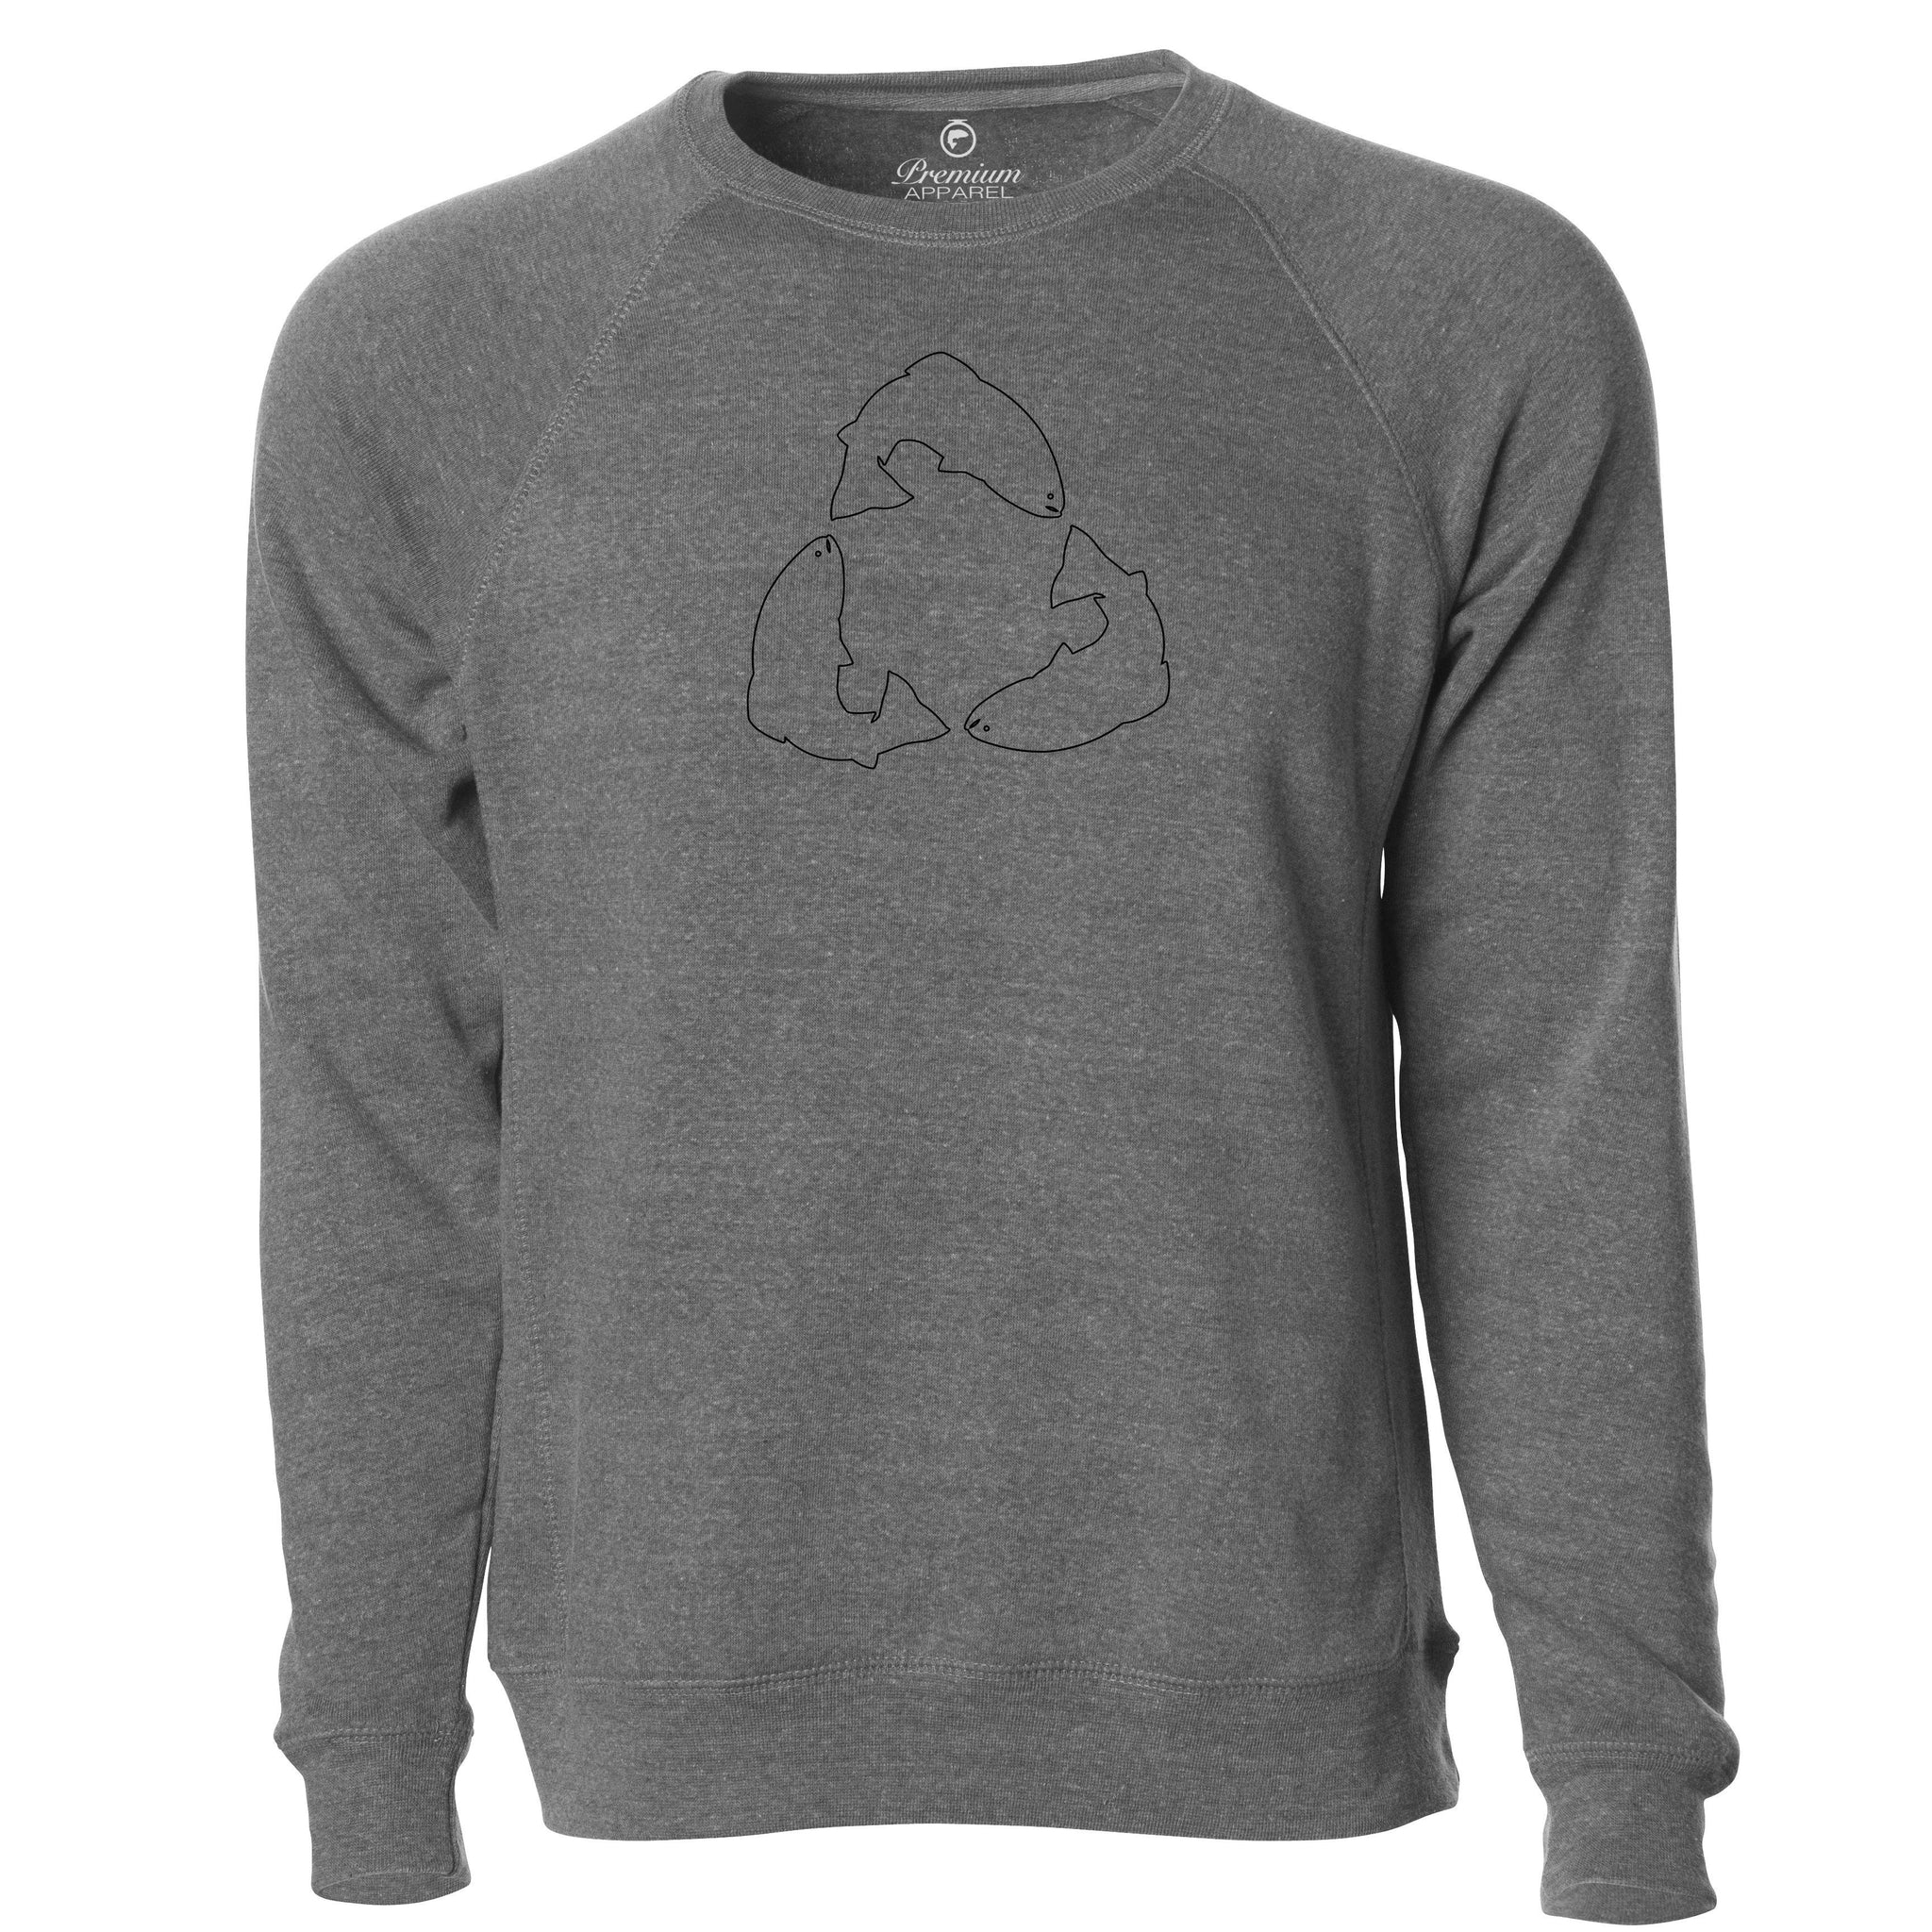 Catch & Release Sweatshirt (Unisex)